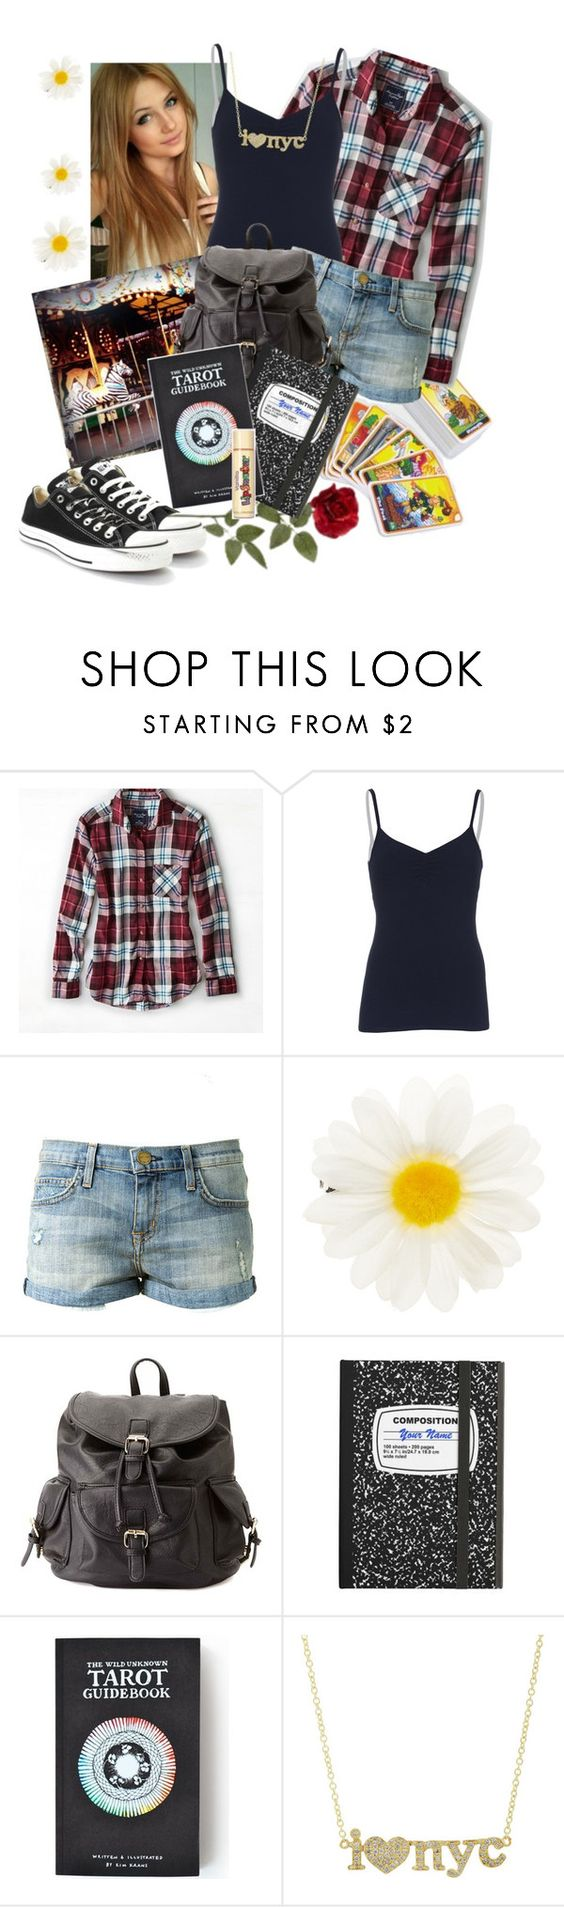 """Charlee Central Park"" by jadecardoza ❤ liked on Polyvore featuring American Eagle Outfitters, Solow, Current/Elliott, Accessorize, Charlotte Russe, The Wild Unknown, Jennifer Meyer Jewelry and Converse"